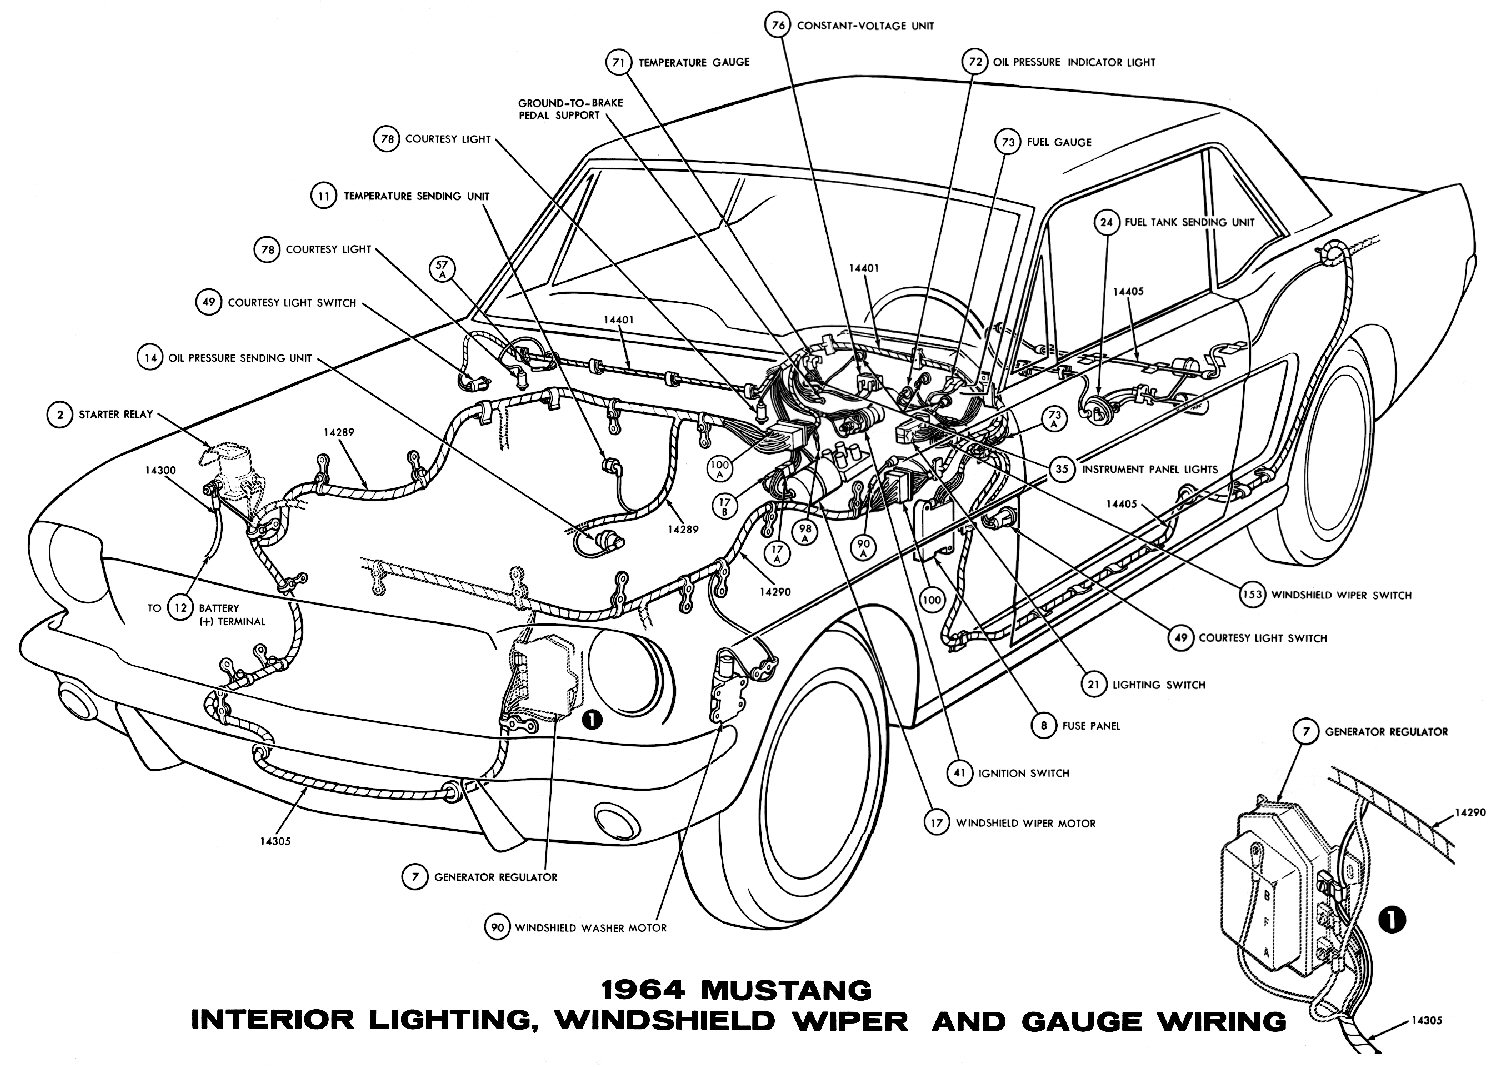 1964 Mustang Wiring Diagrams Average Joe Restoration Peugeot 206 Fuse Box Brake Lights Interior Windshield Wiper And Gauges Pictorial Or Schematic